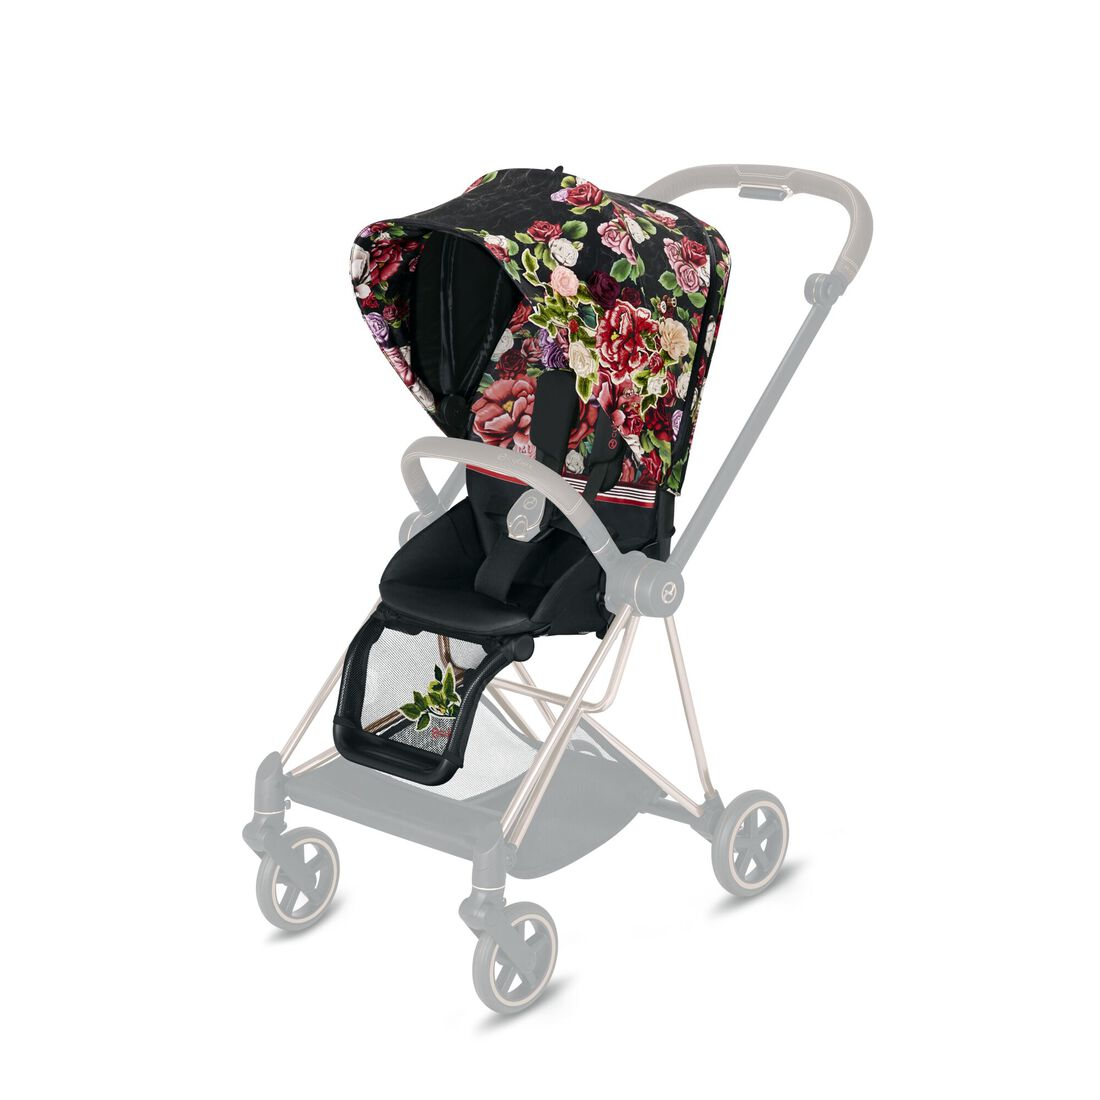 CYBEX Mios Seat Pack - Spring Blossom Dark in Spring Blossom Dark large image number 1